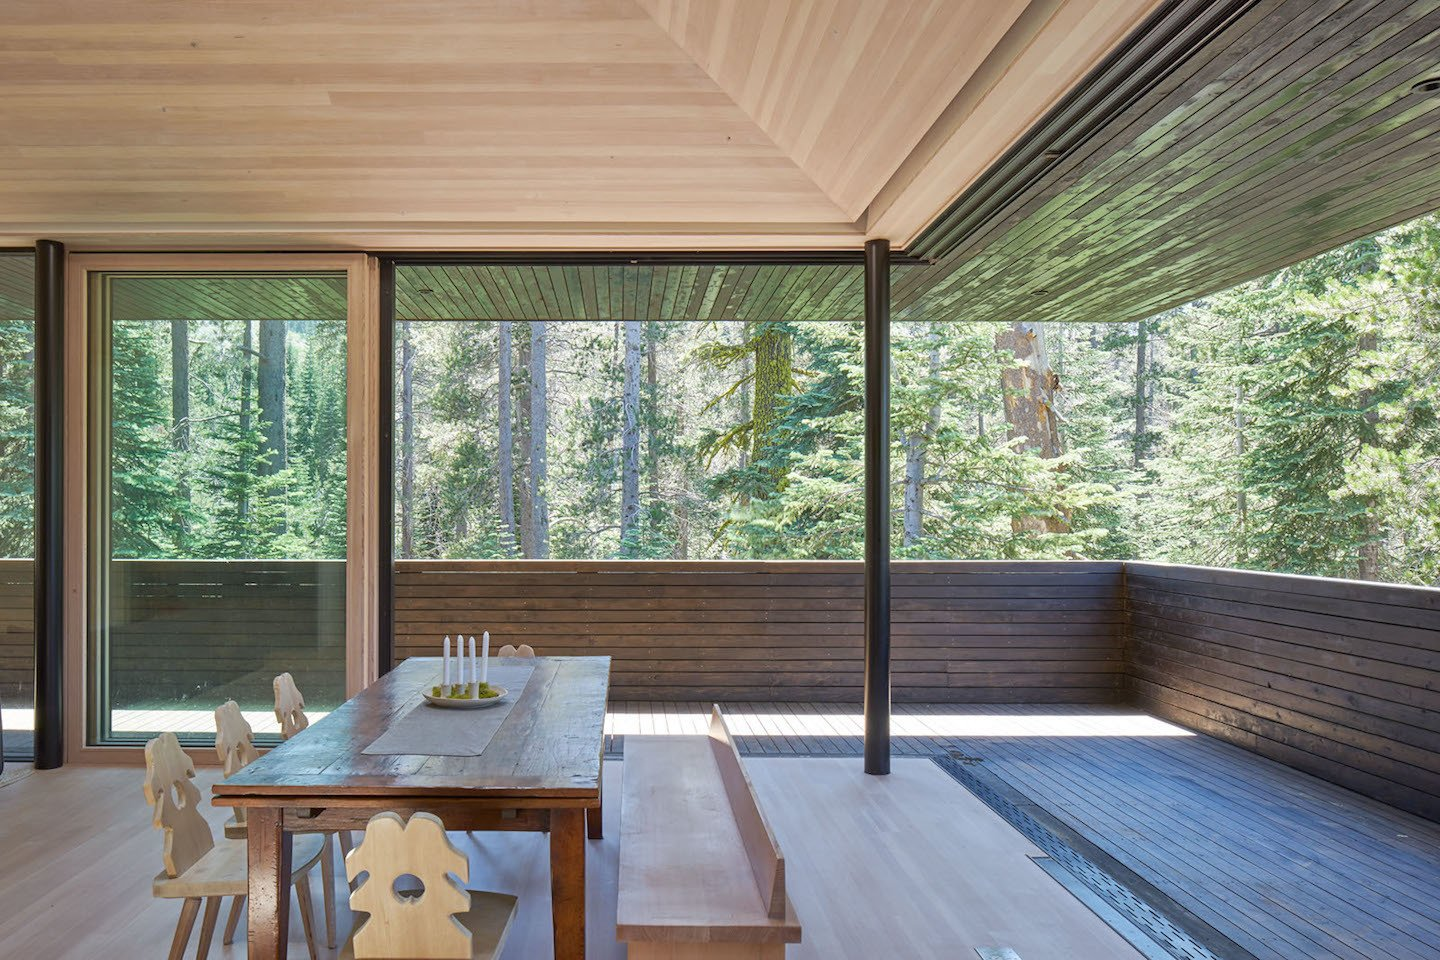 Imported Tyrolean dining chairs and a custom bench designed by Lexie pair well with the family's antique leaf table under the Douglas Fir ceiling.  Photo 6 of 7 in Here's What Norse Mythology and Modern Architecture Have in Common